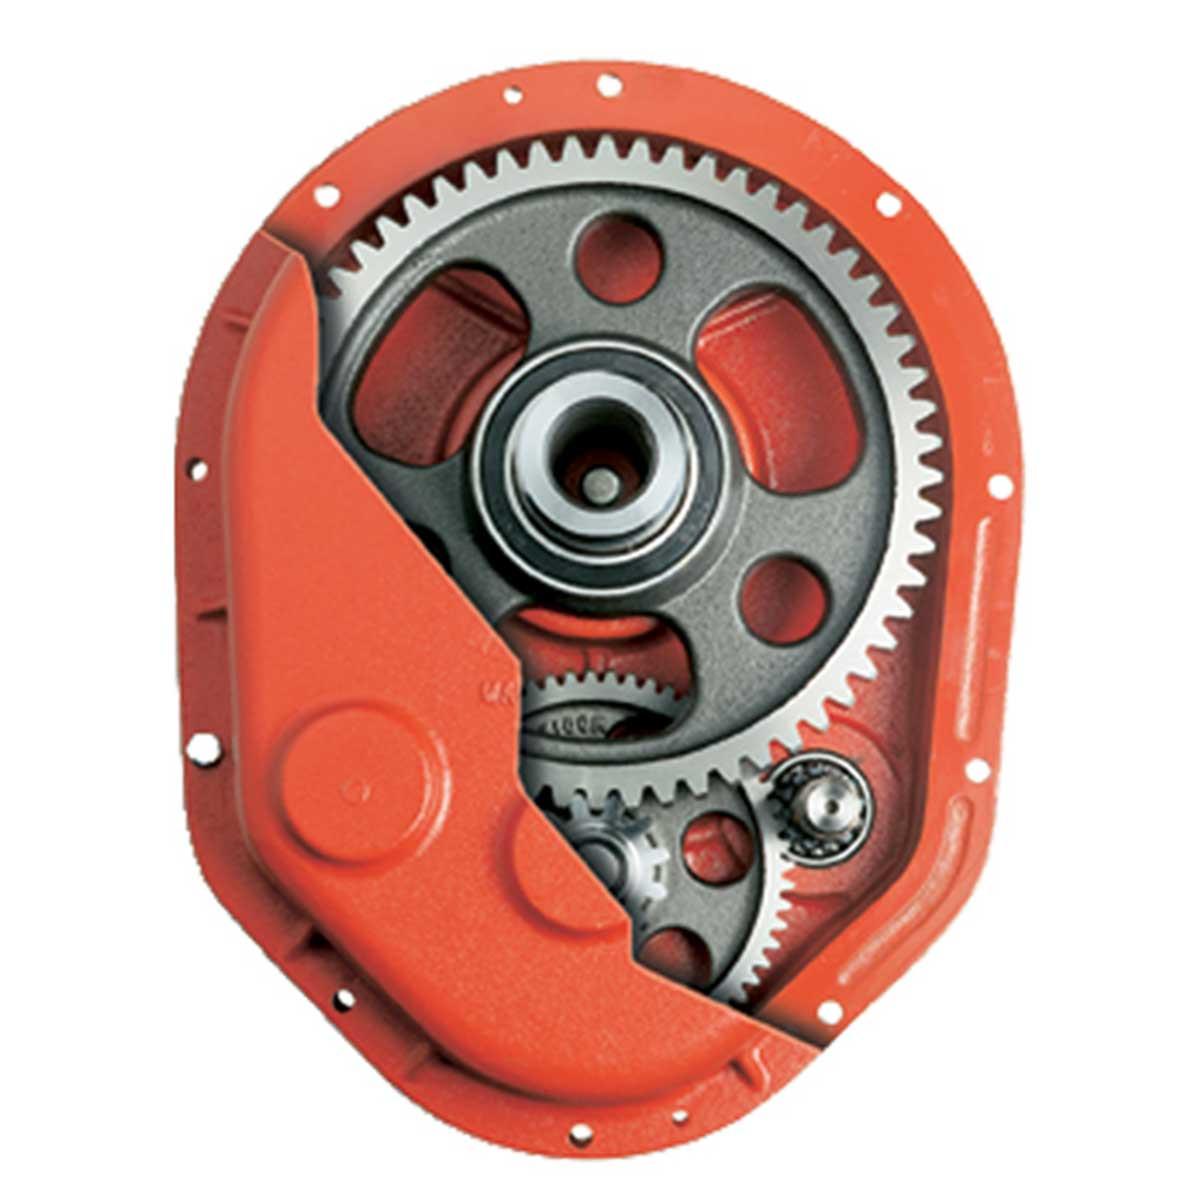 Crown C6 Concrete Mixer gears